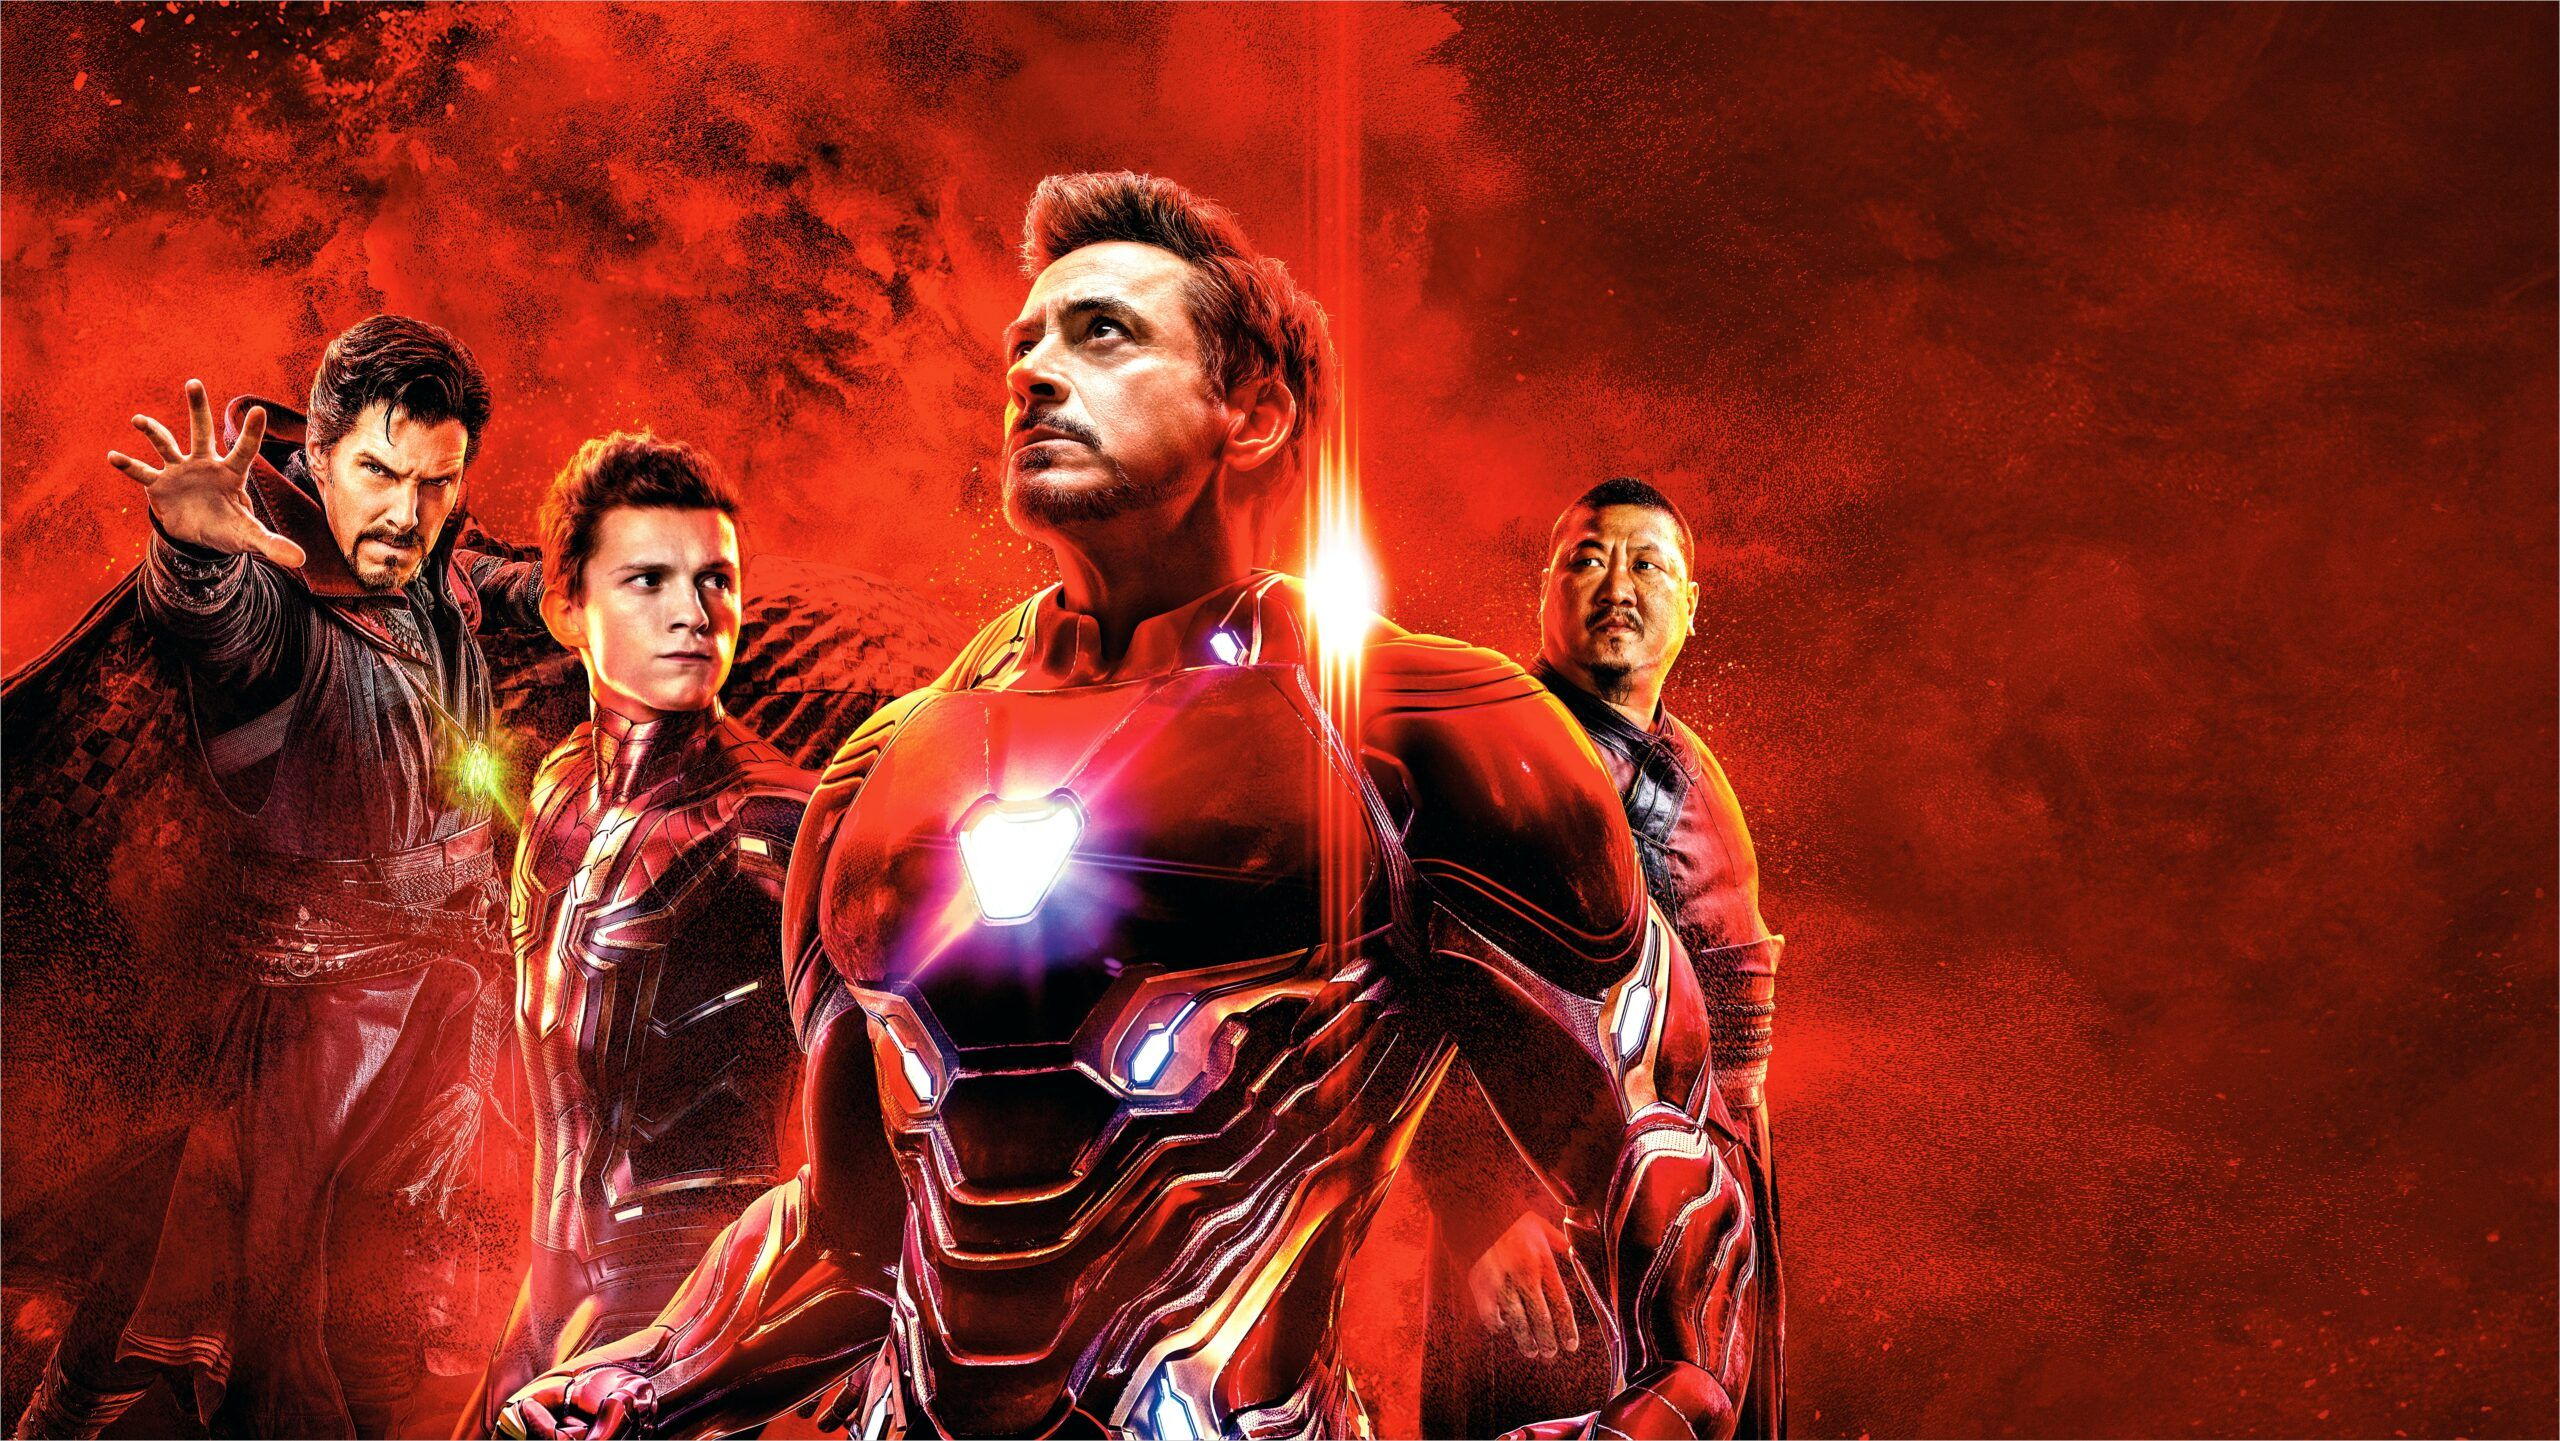 Avengers Endgame 4k Wallpaper Android In 2020 Avengers Android